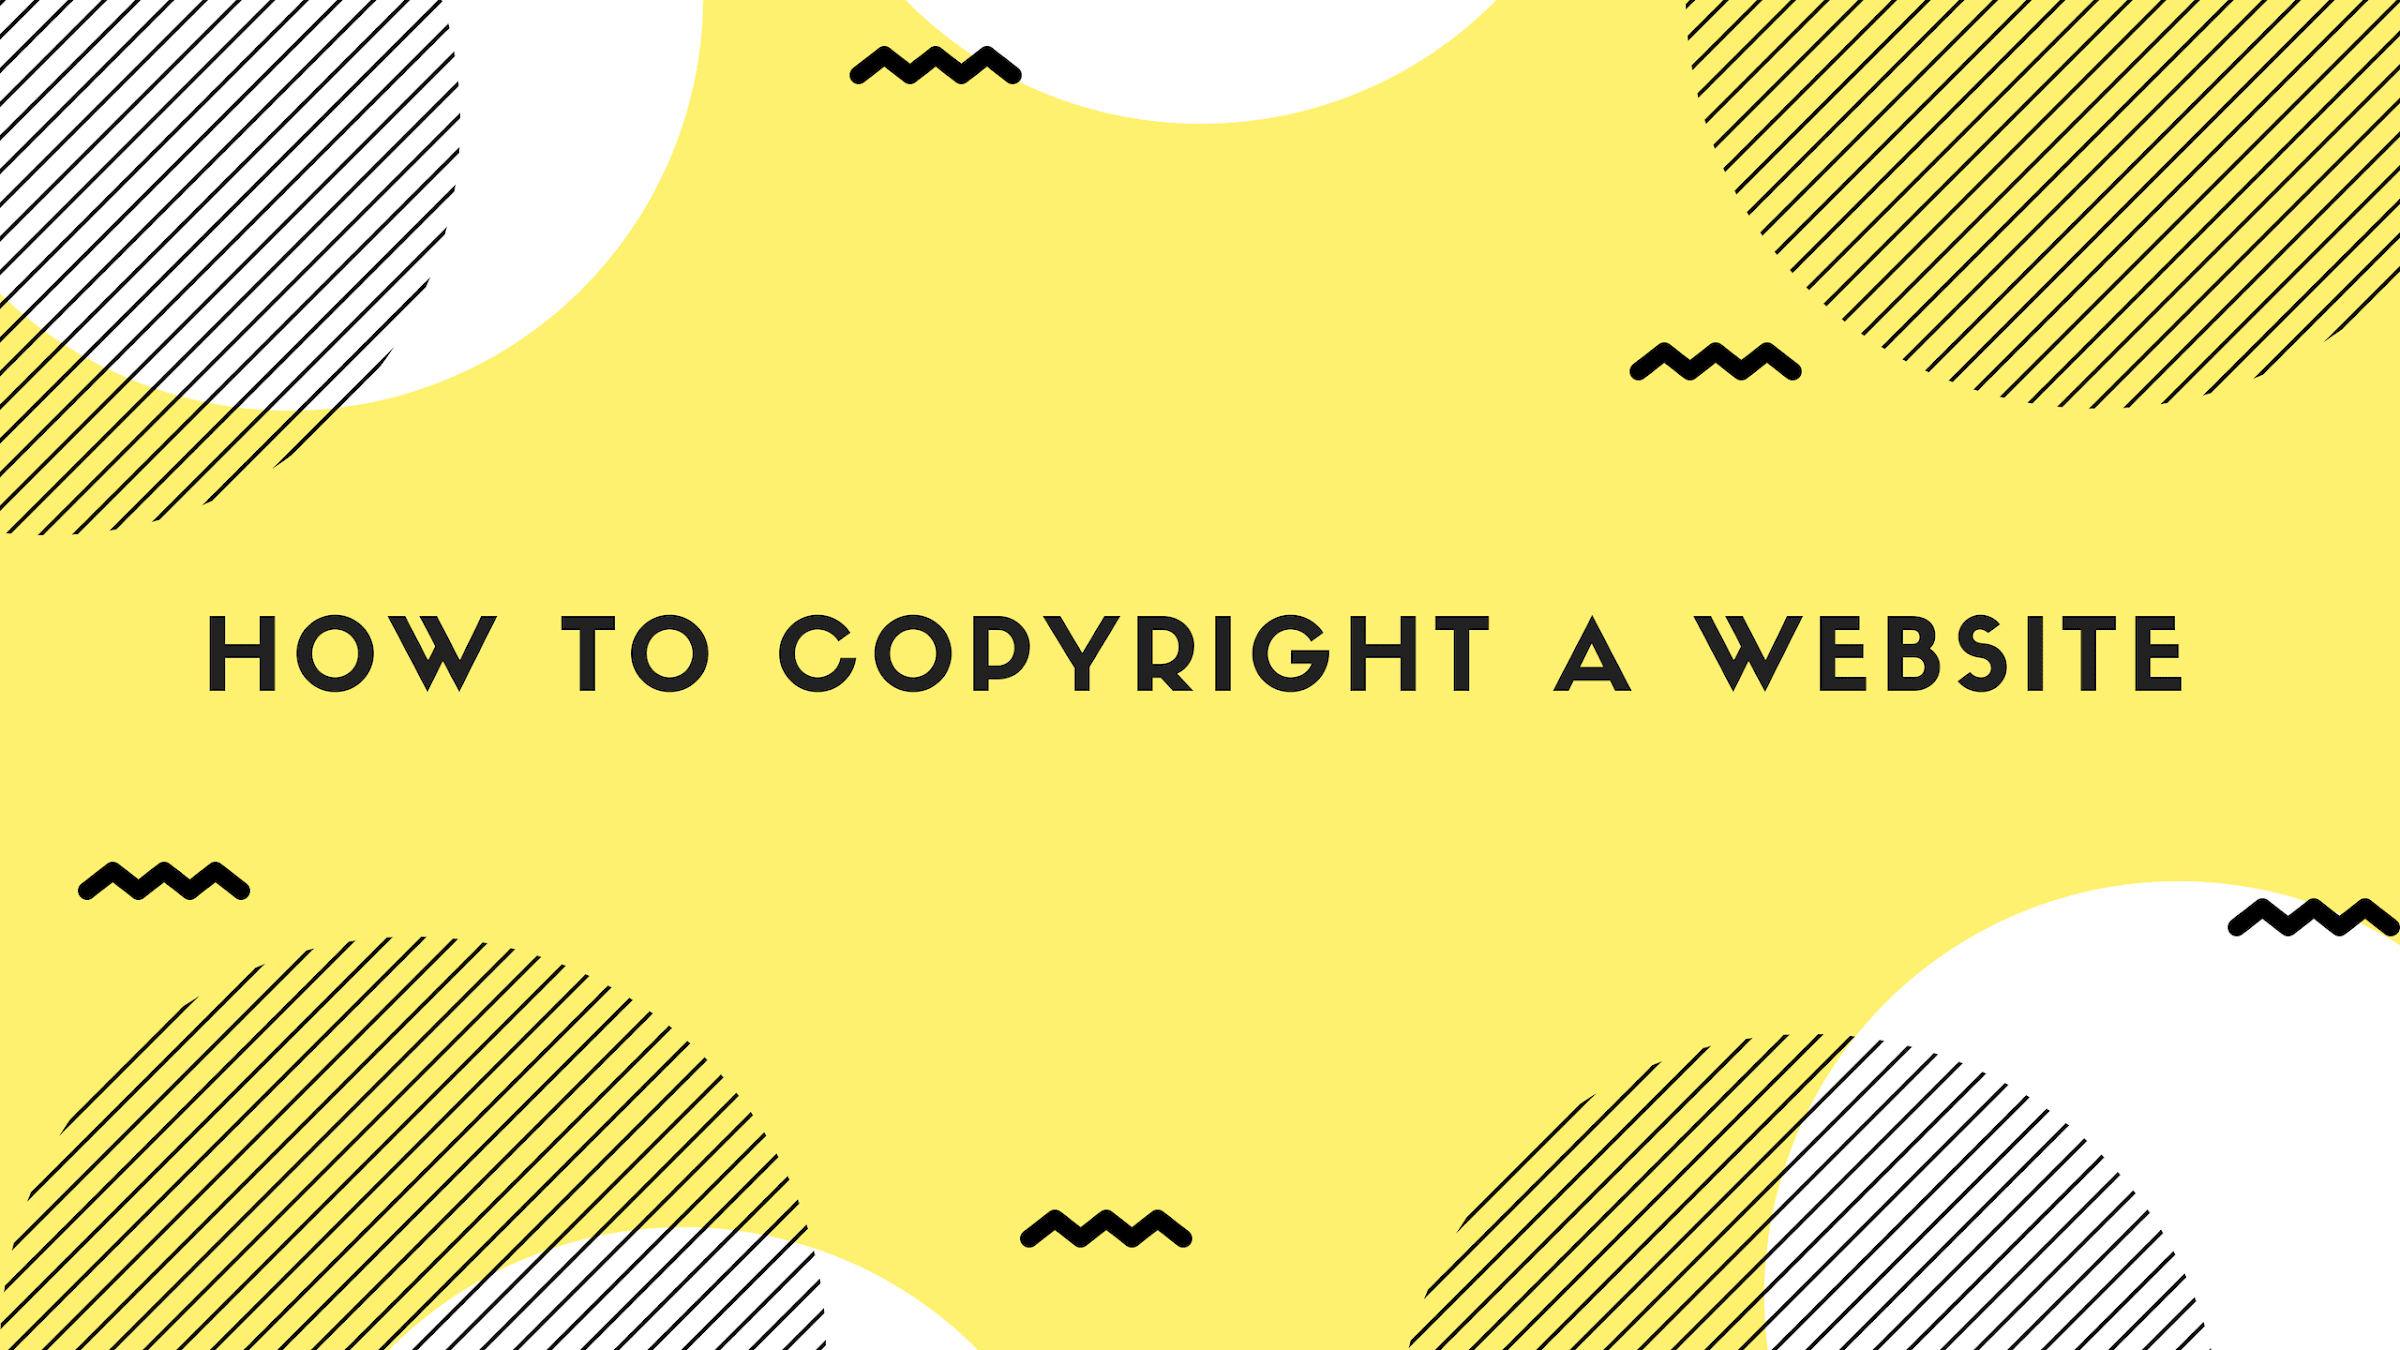 How to copyright a website in India